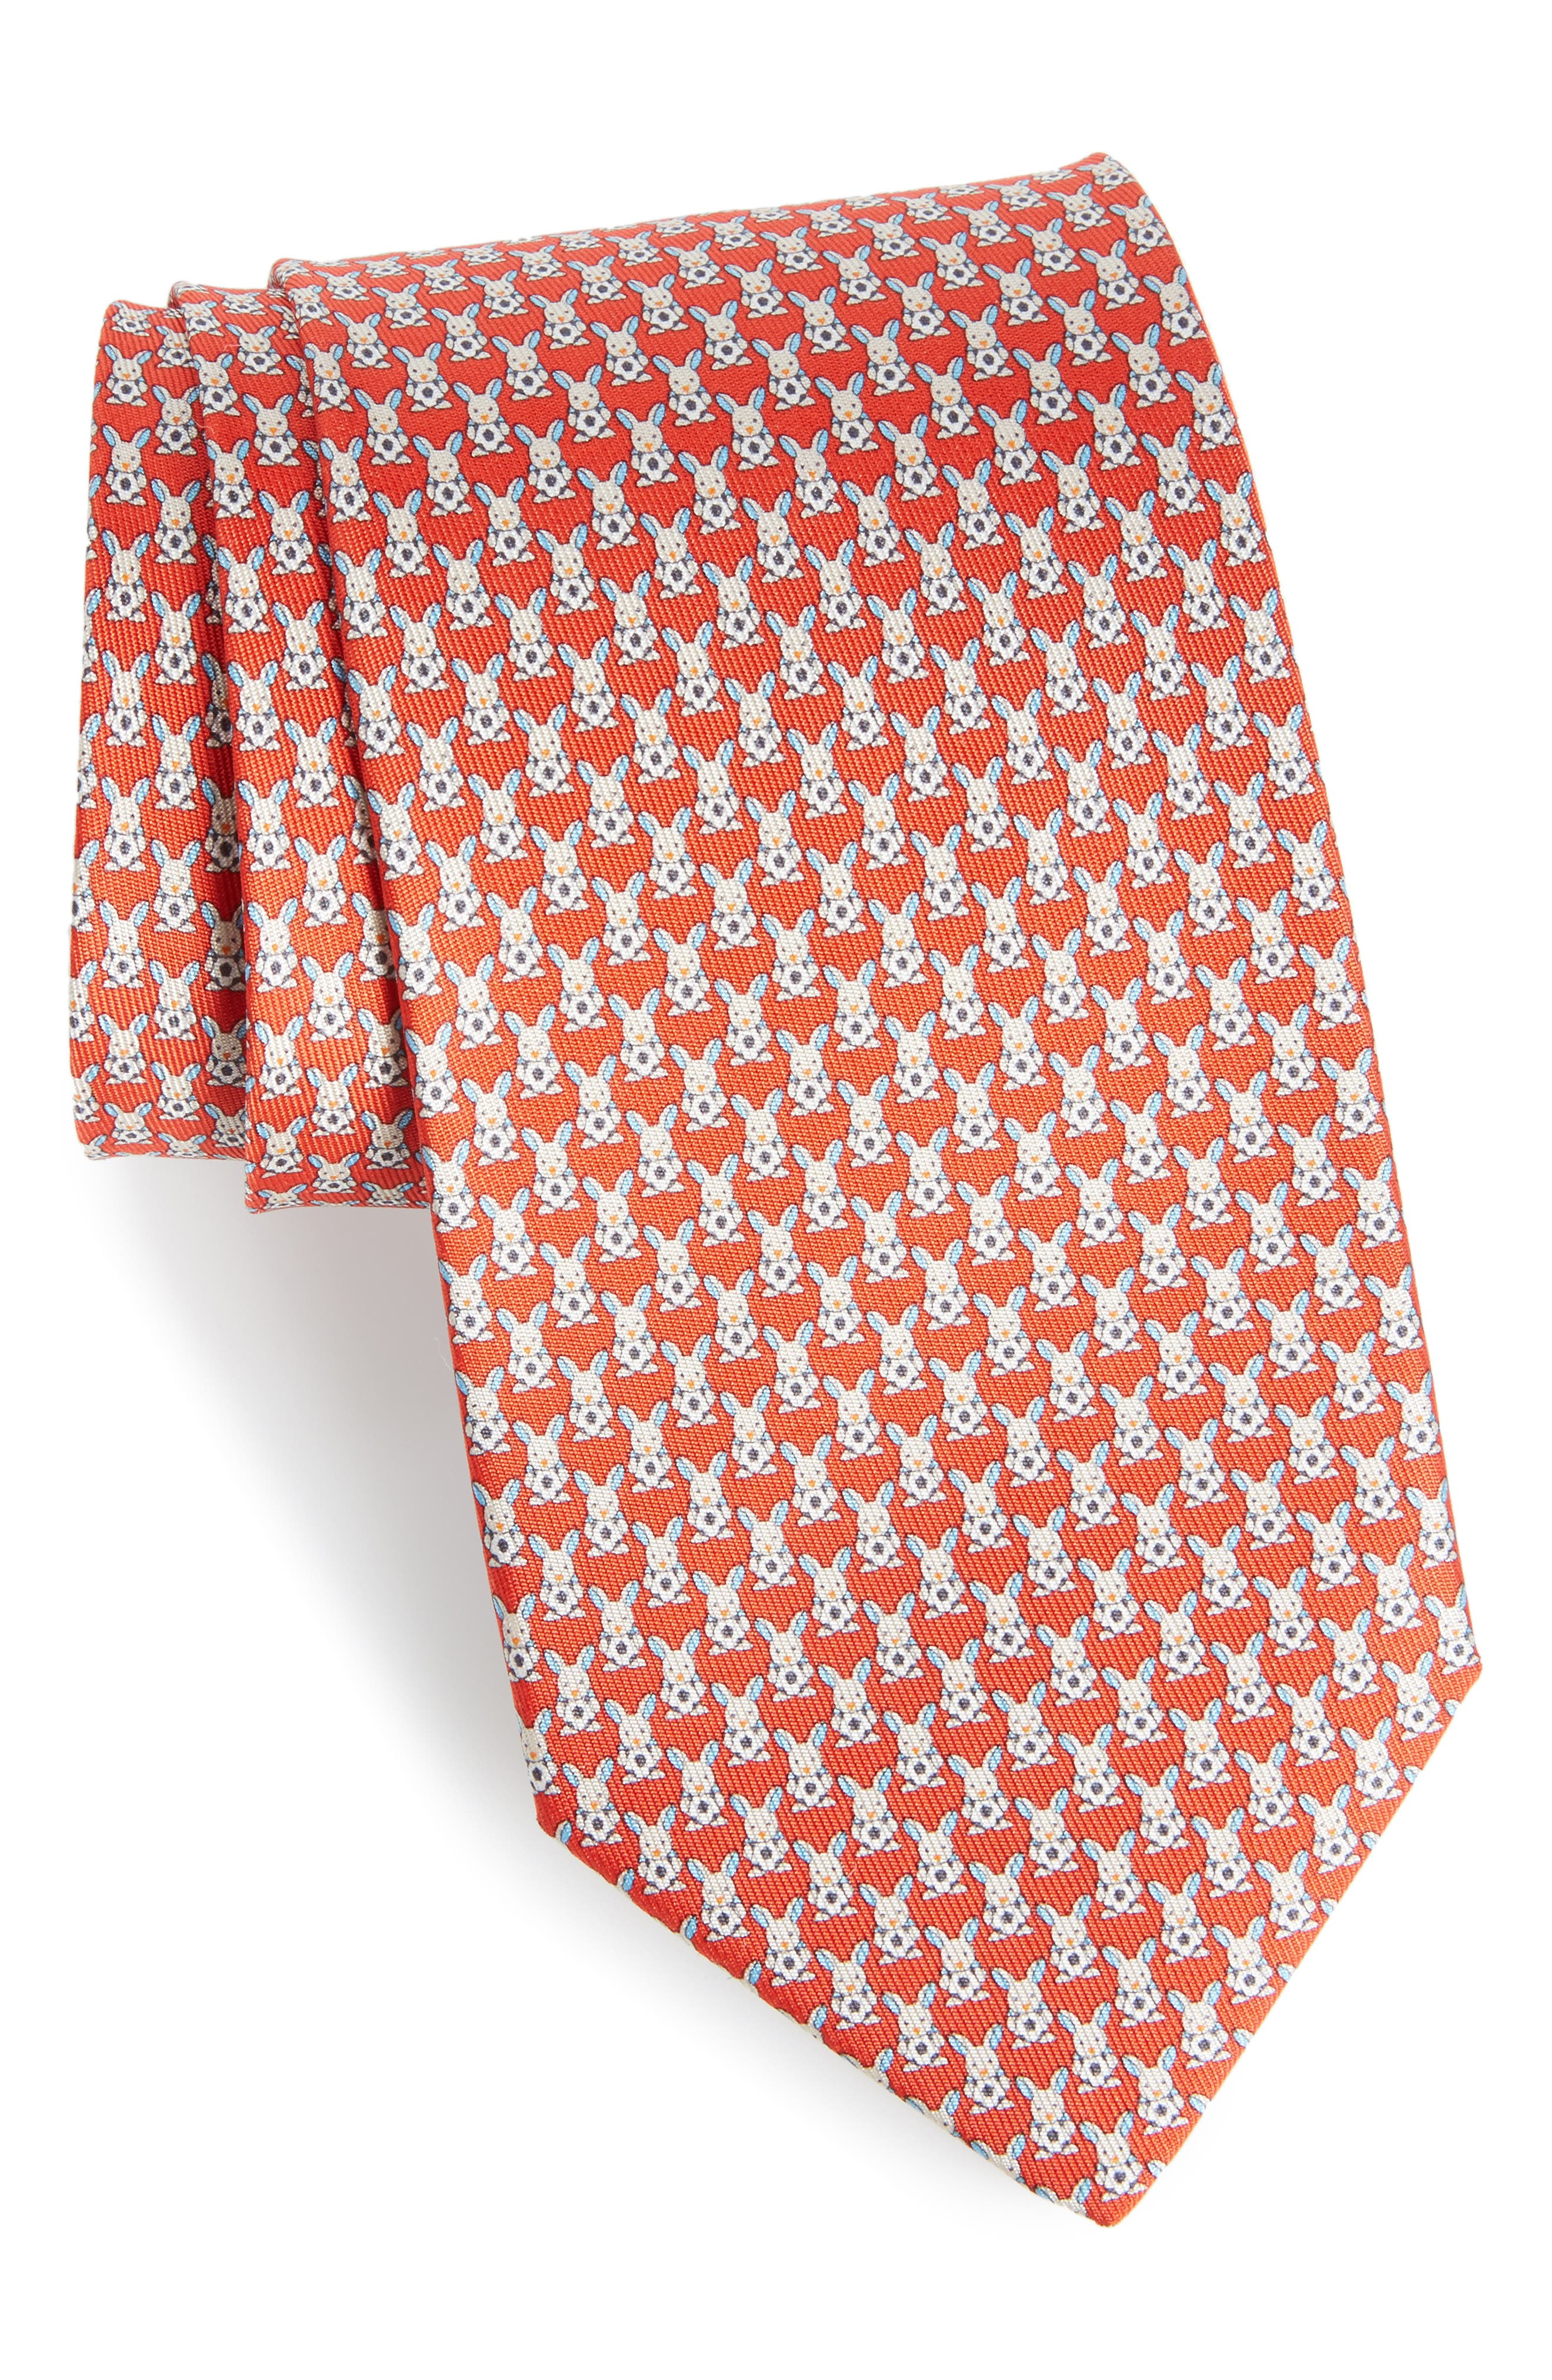 Errico Bunny Print Silk Tie,                             Main thumbnail 1, color,                             Red